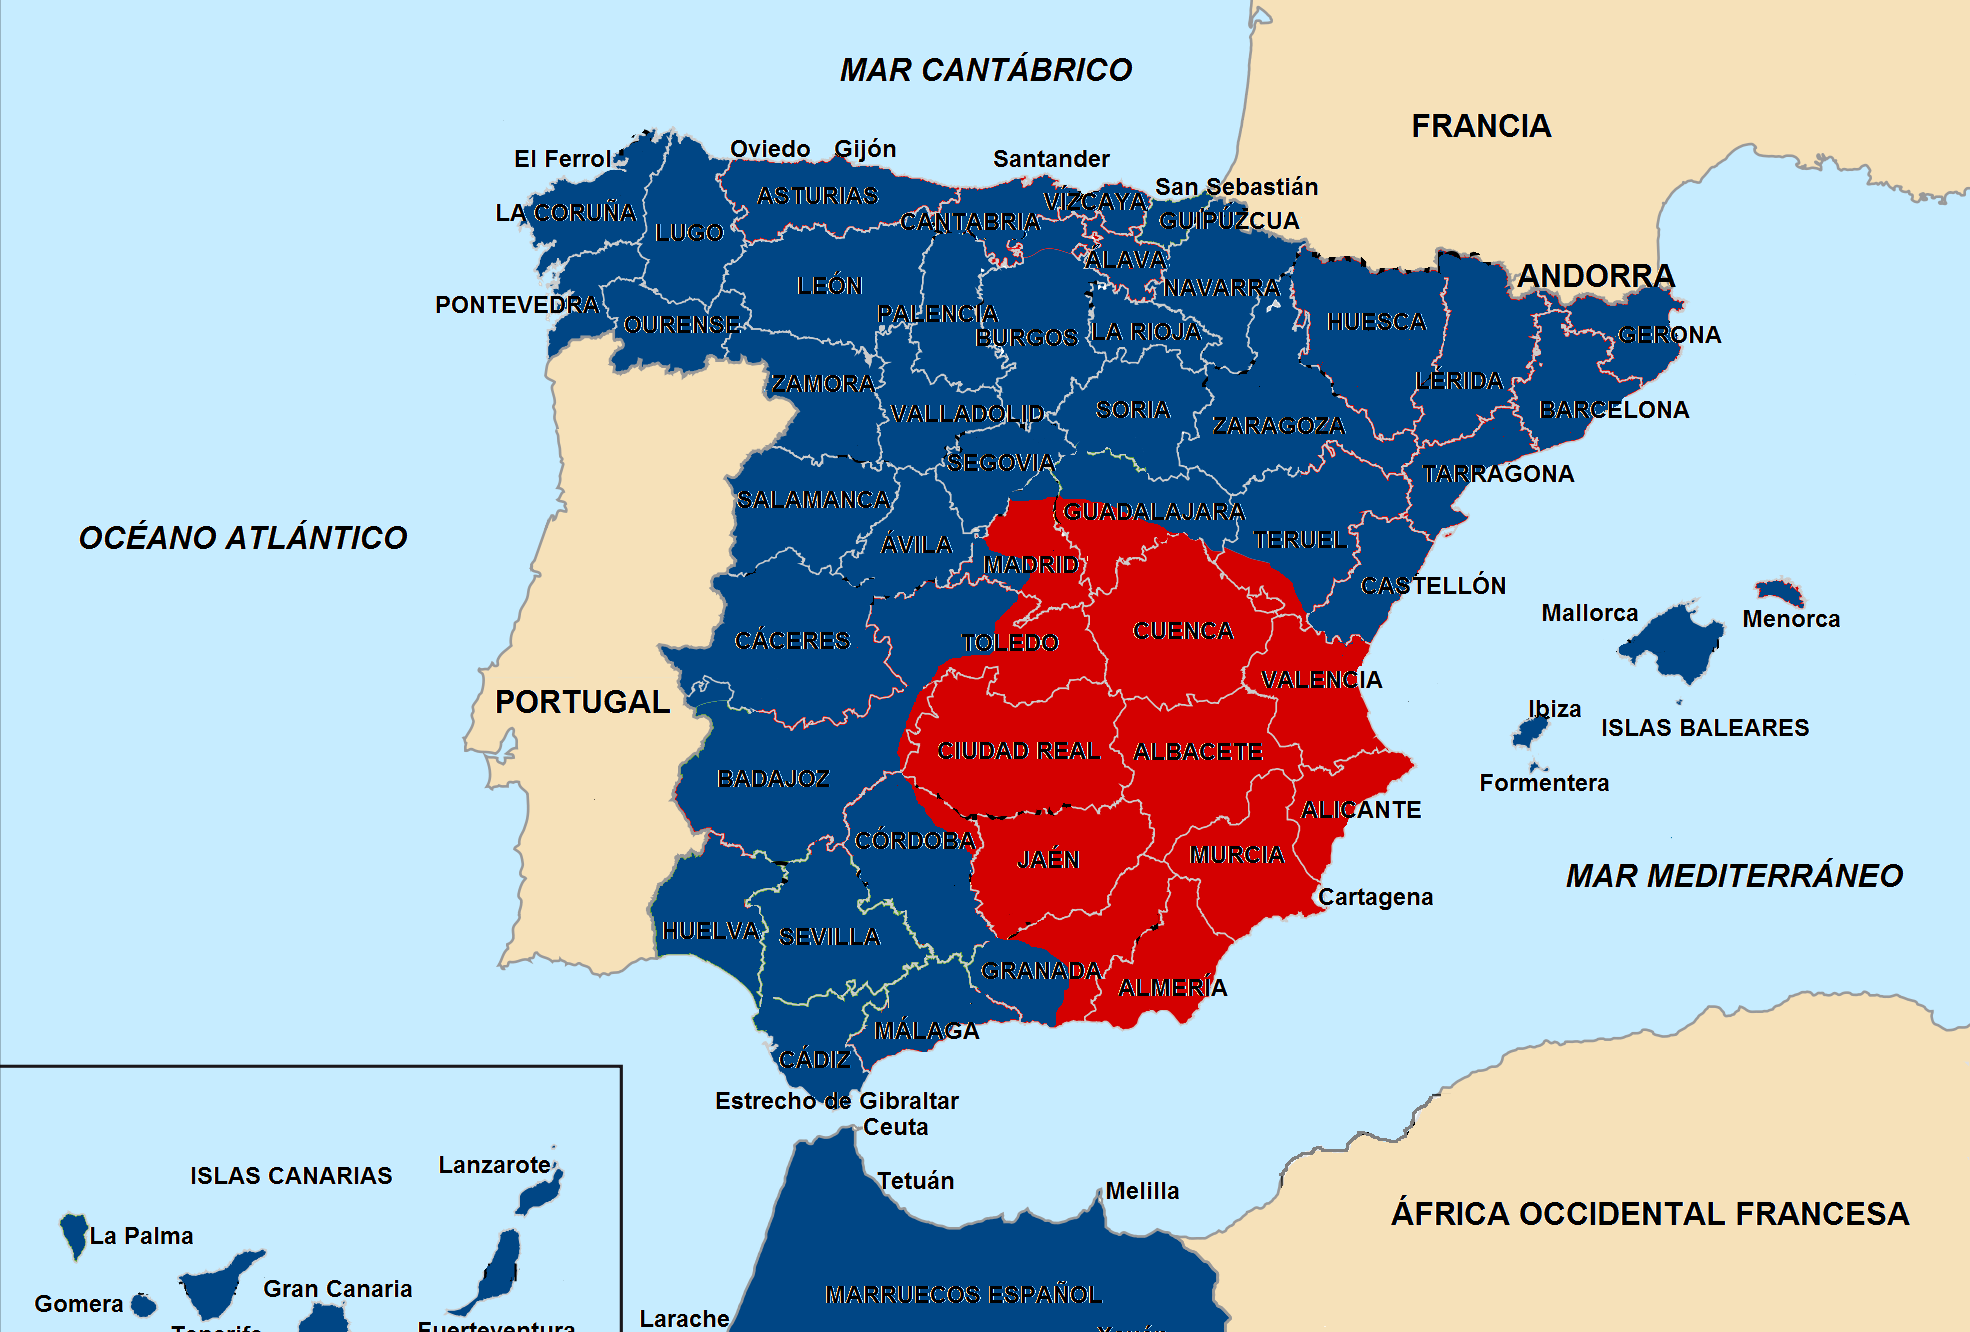 Mapa Guerra Civil Española.Pin En Incivil Guerra